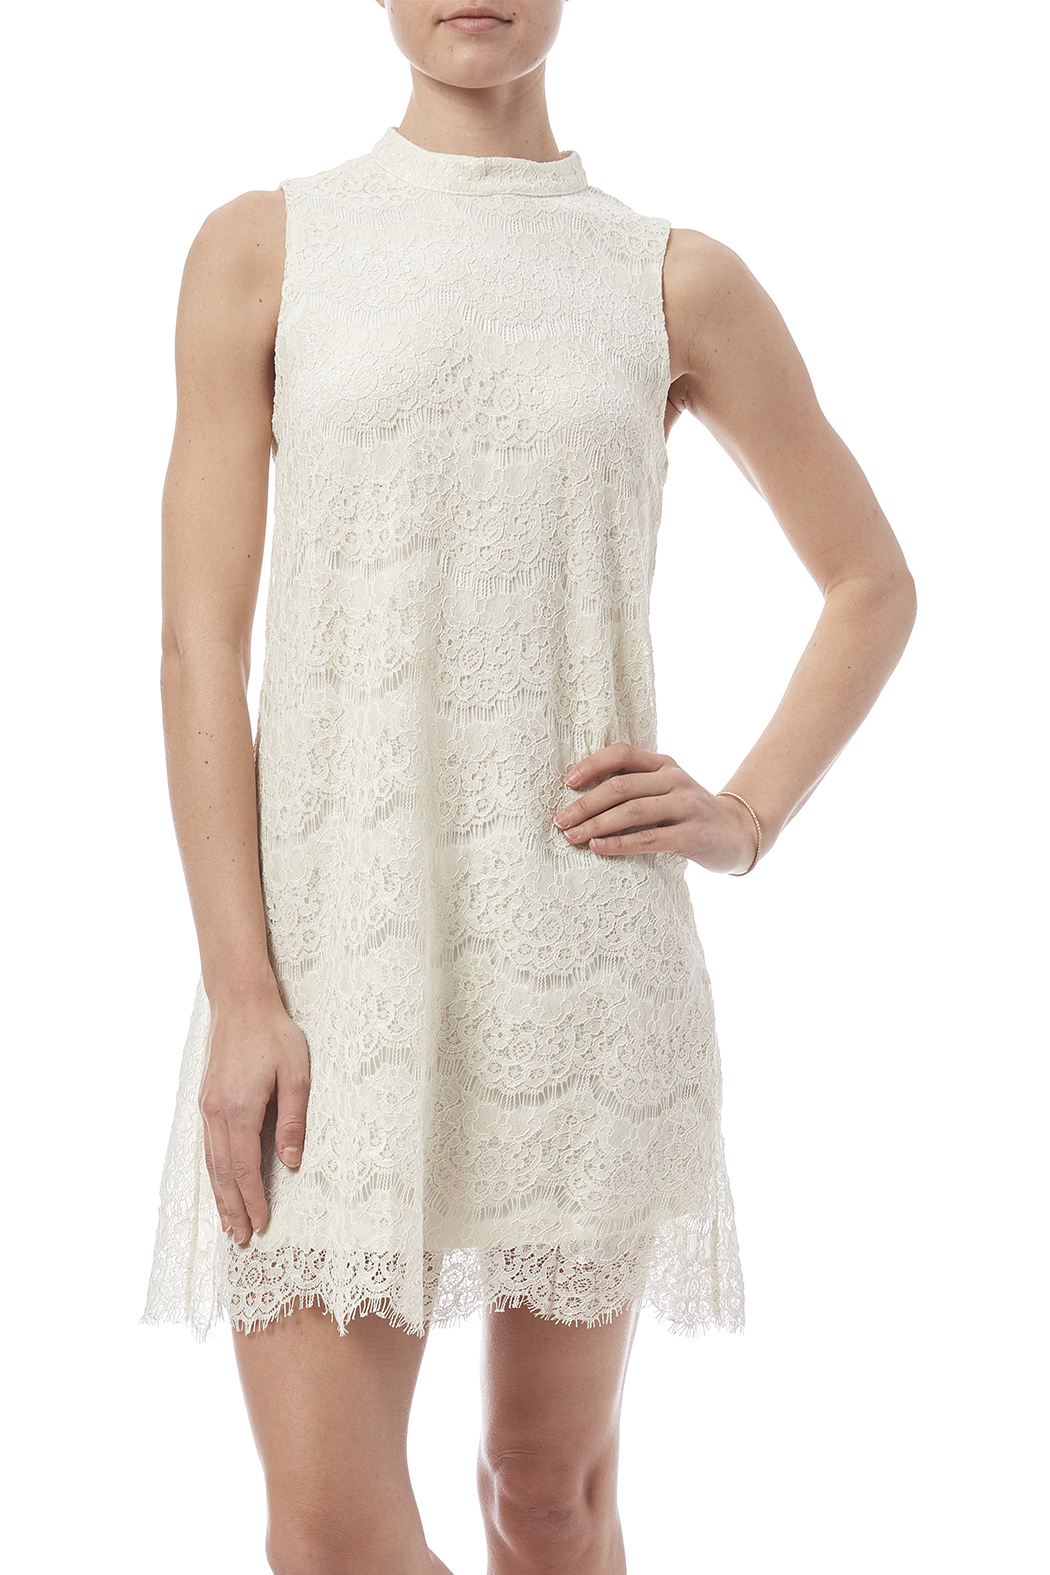 fashion on earth Lace Shift Dress - Main Image